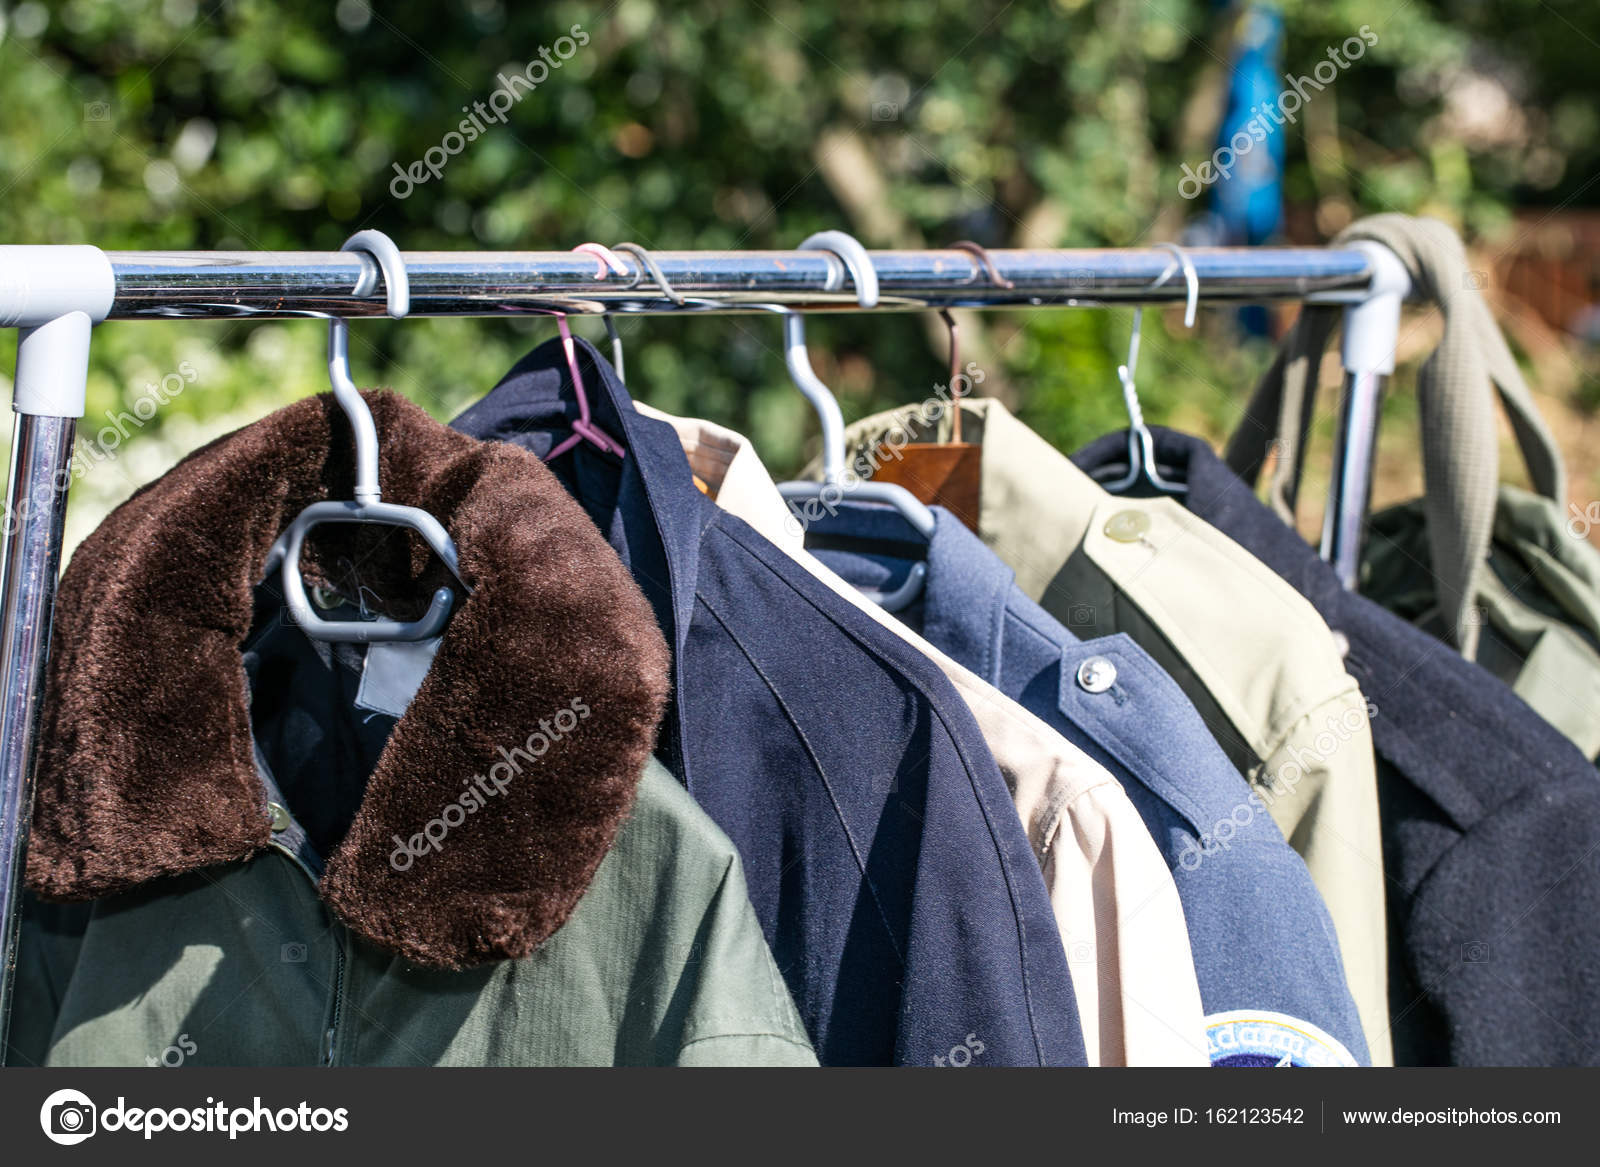 4fa2083c5 Coats and jackets on rack at thrift store to resale — Stock Photo ...